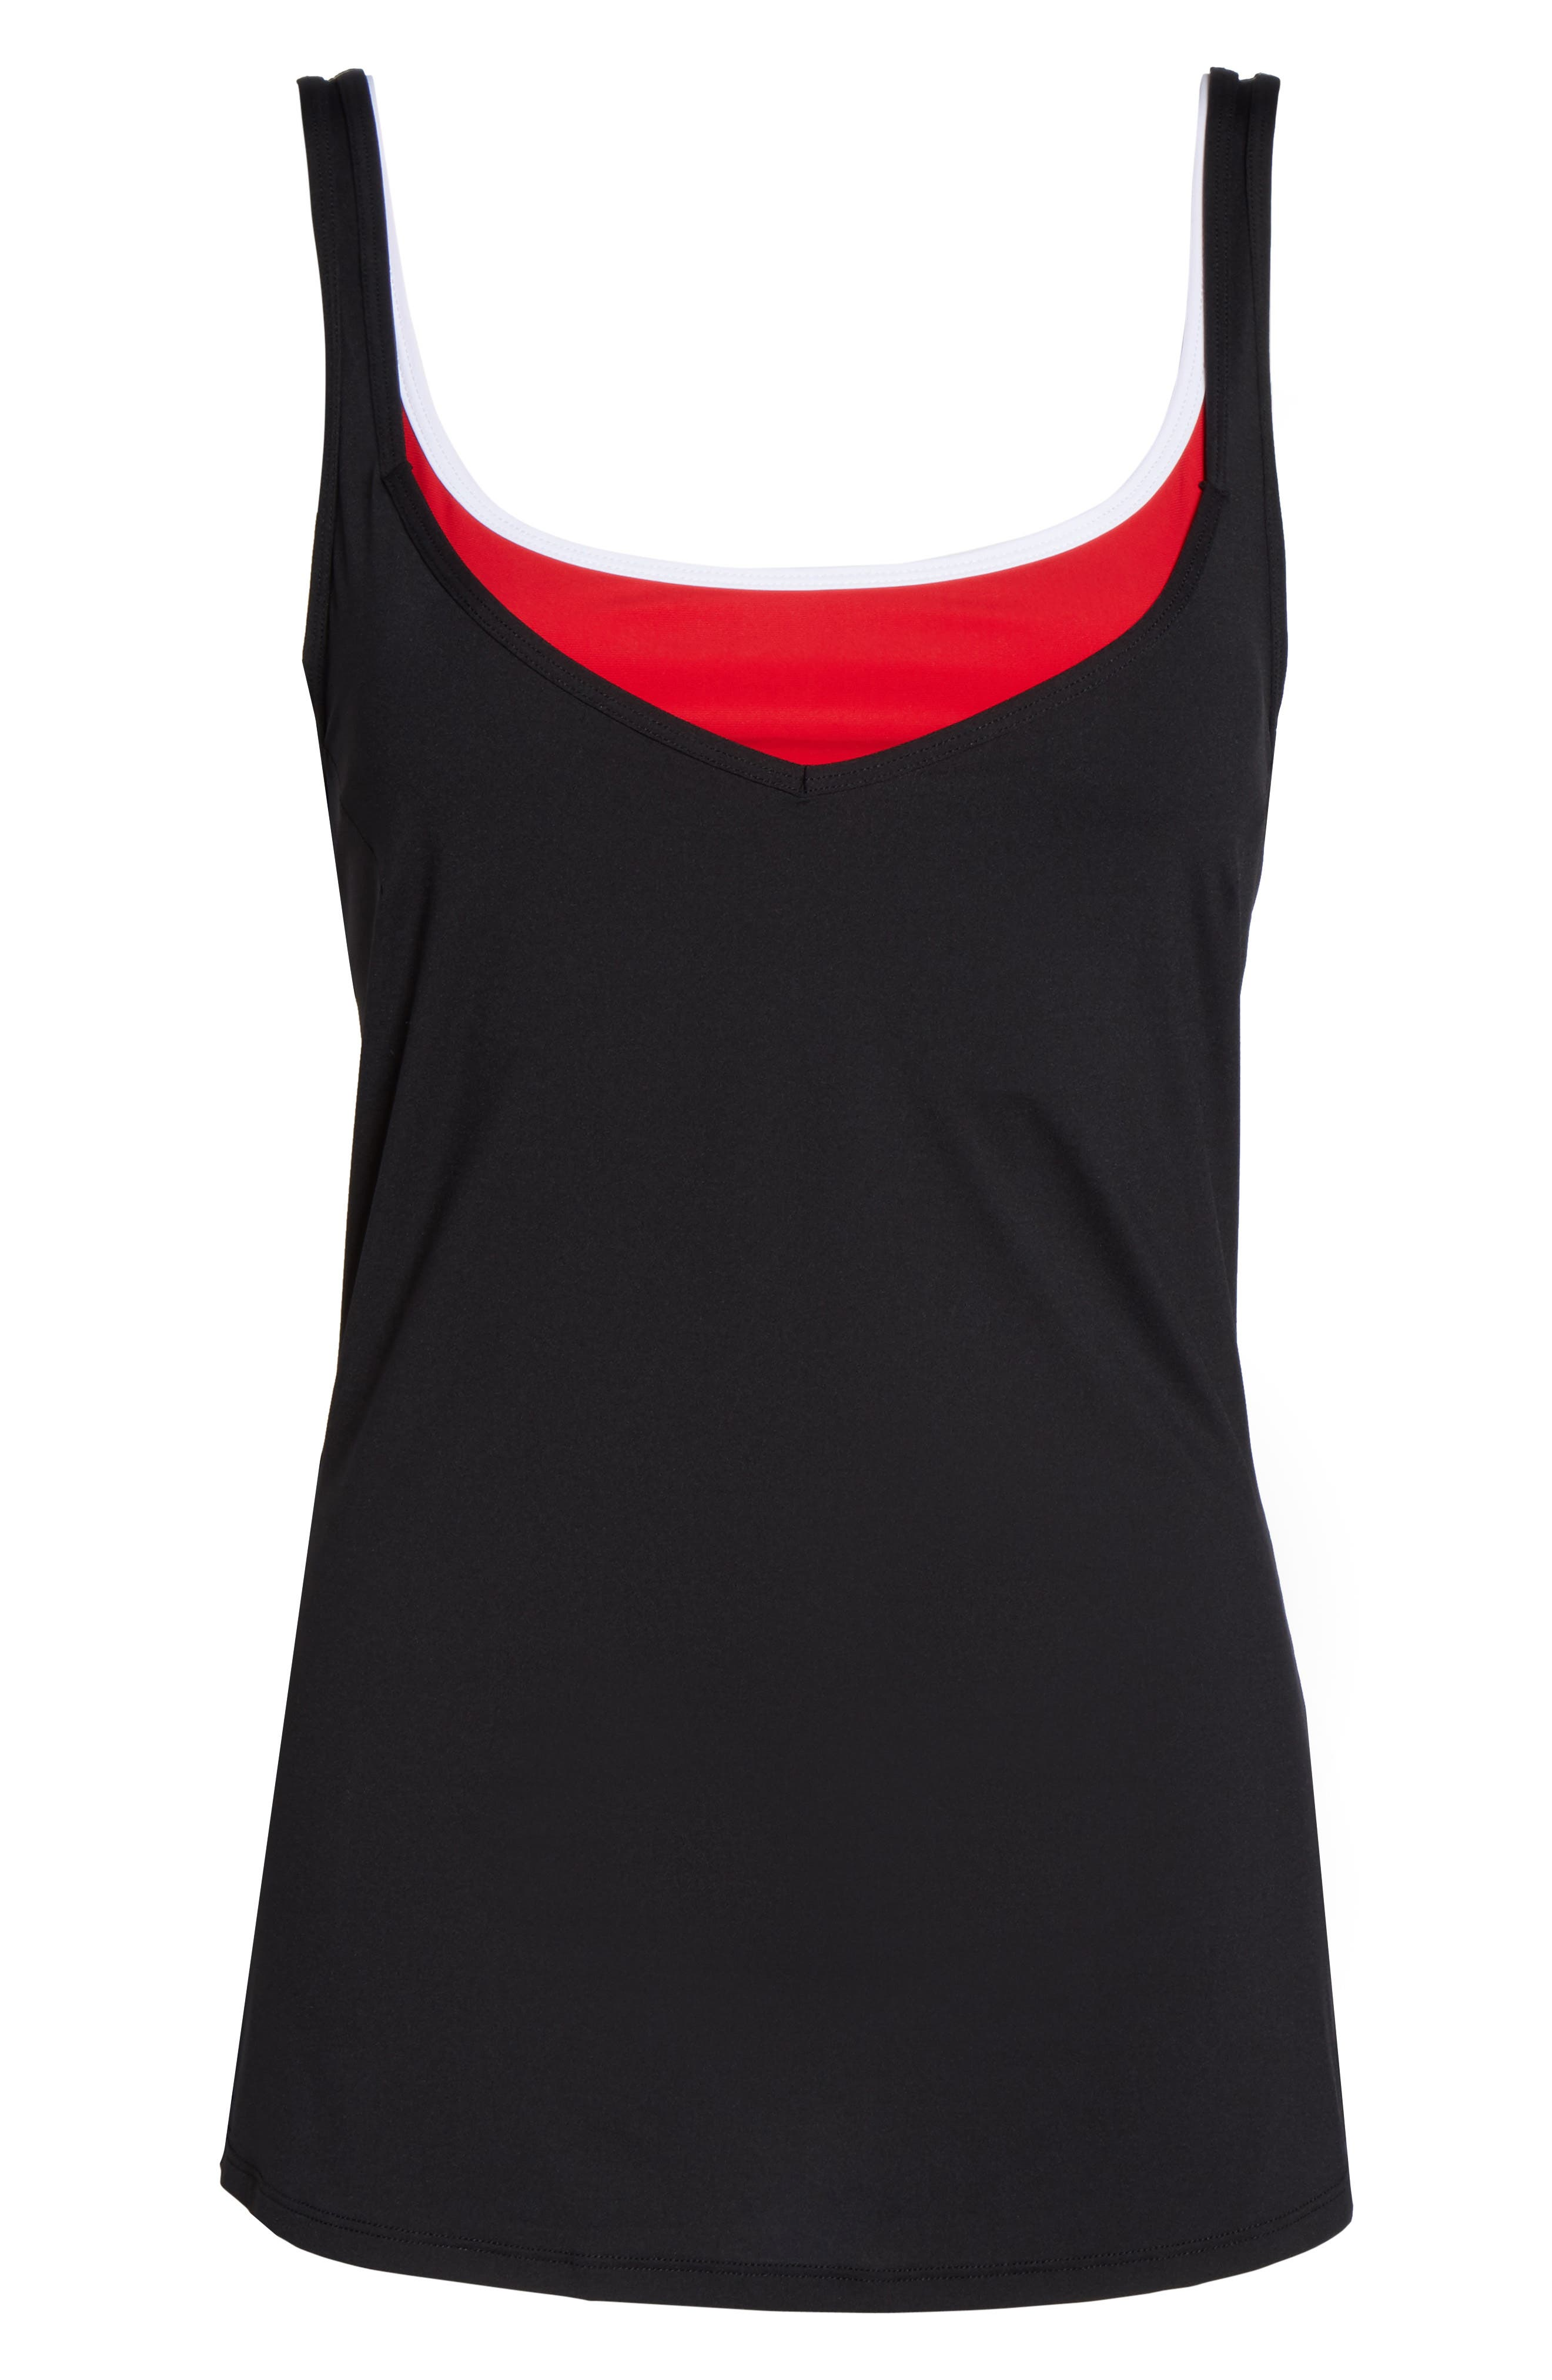 BoomBoom Athletica 2-in-1 Tank,                             Alternate thumbnail 7, color,                             001